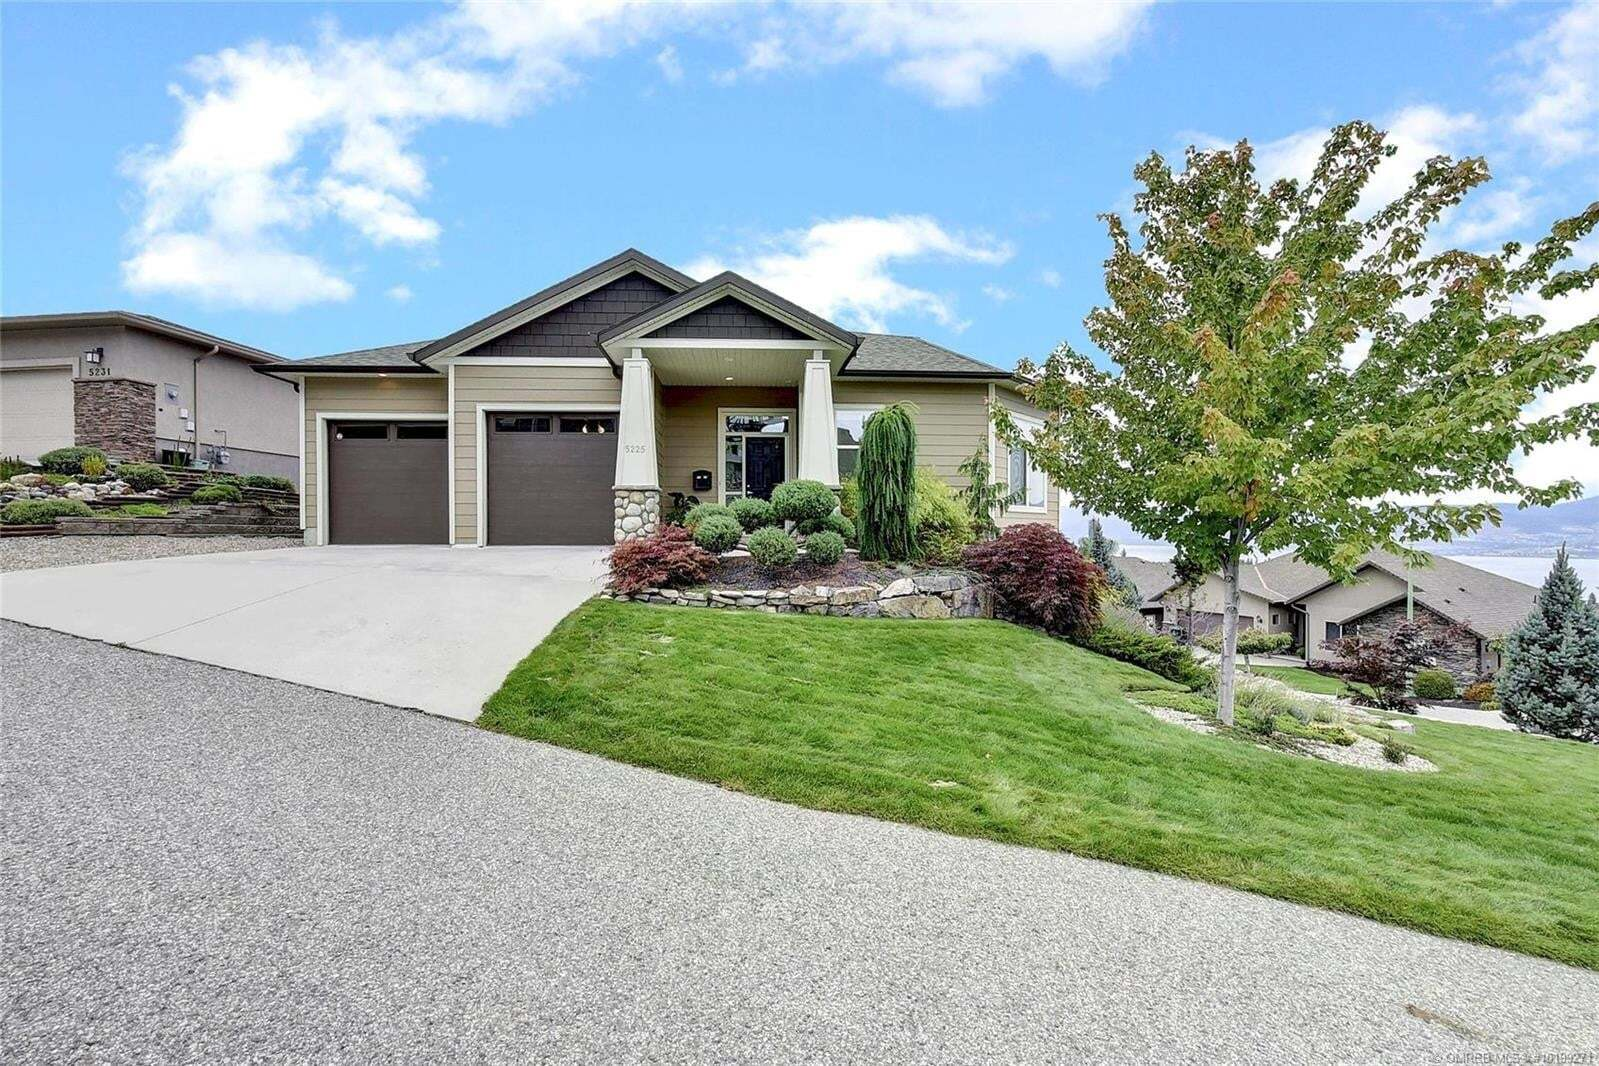 House for sale at 5225 Burnell Ct Kelowna British Columbia - MLS: 10199271